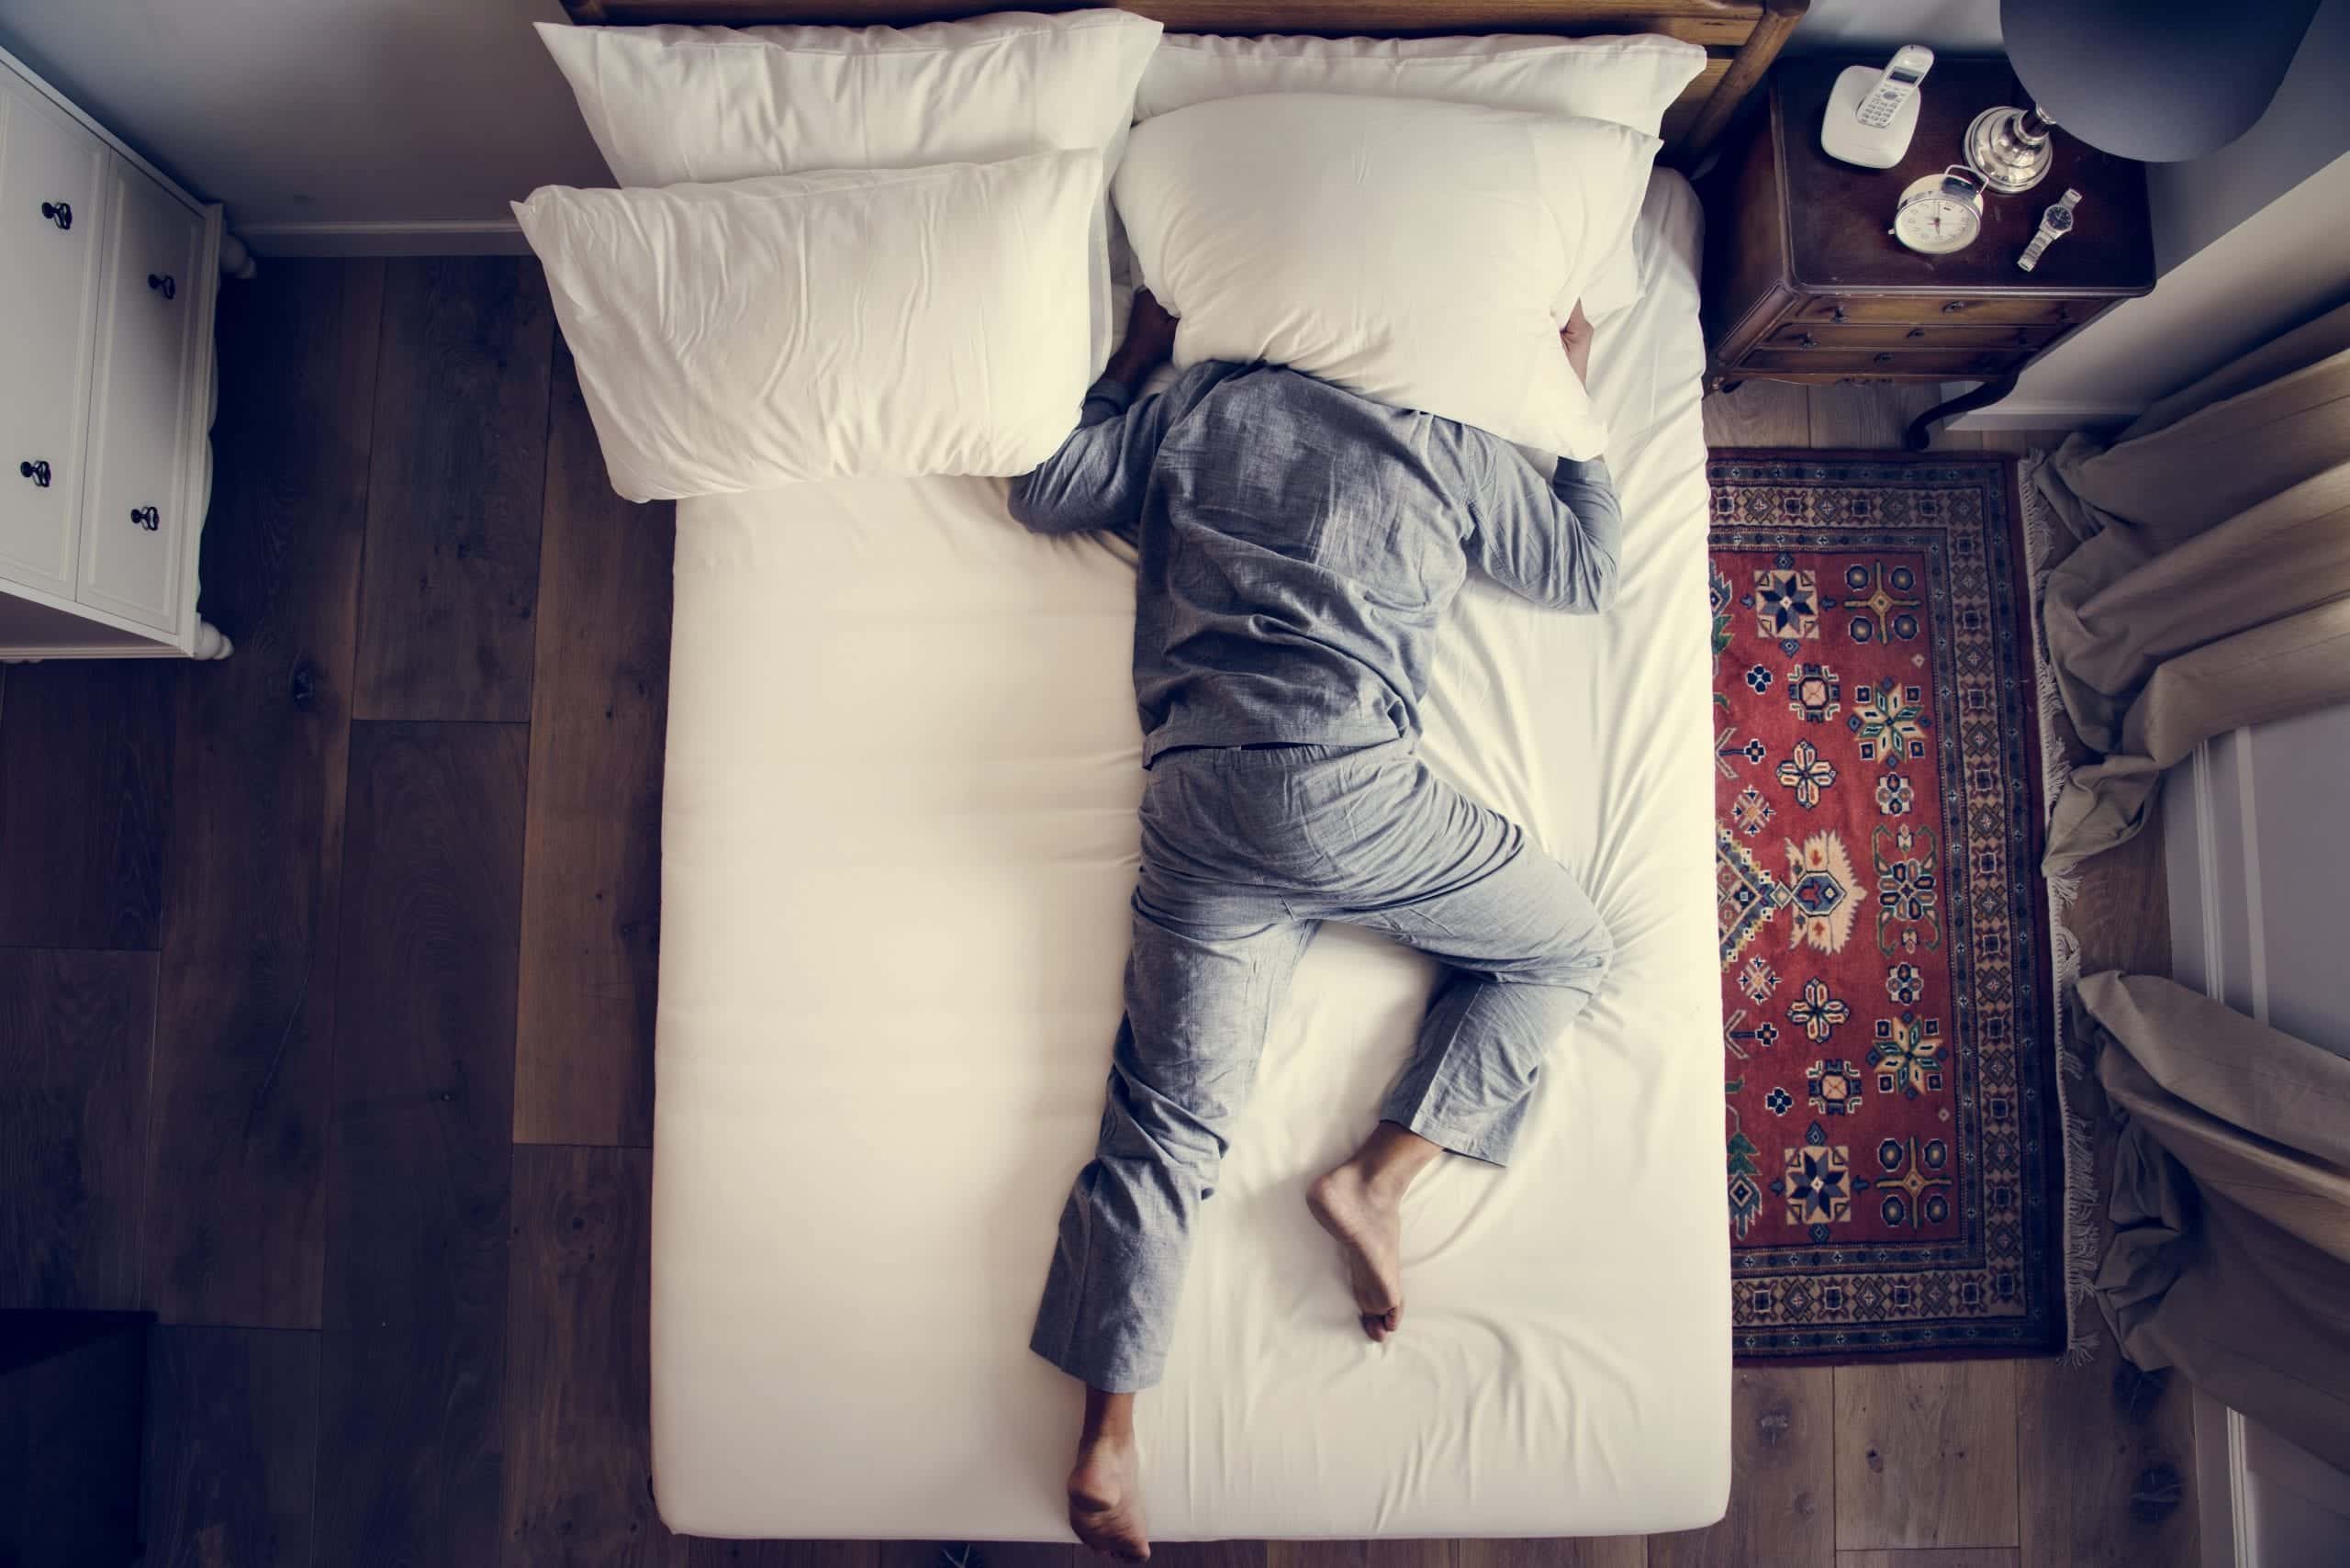 What Causes Restlessness?